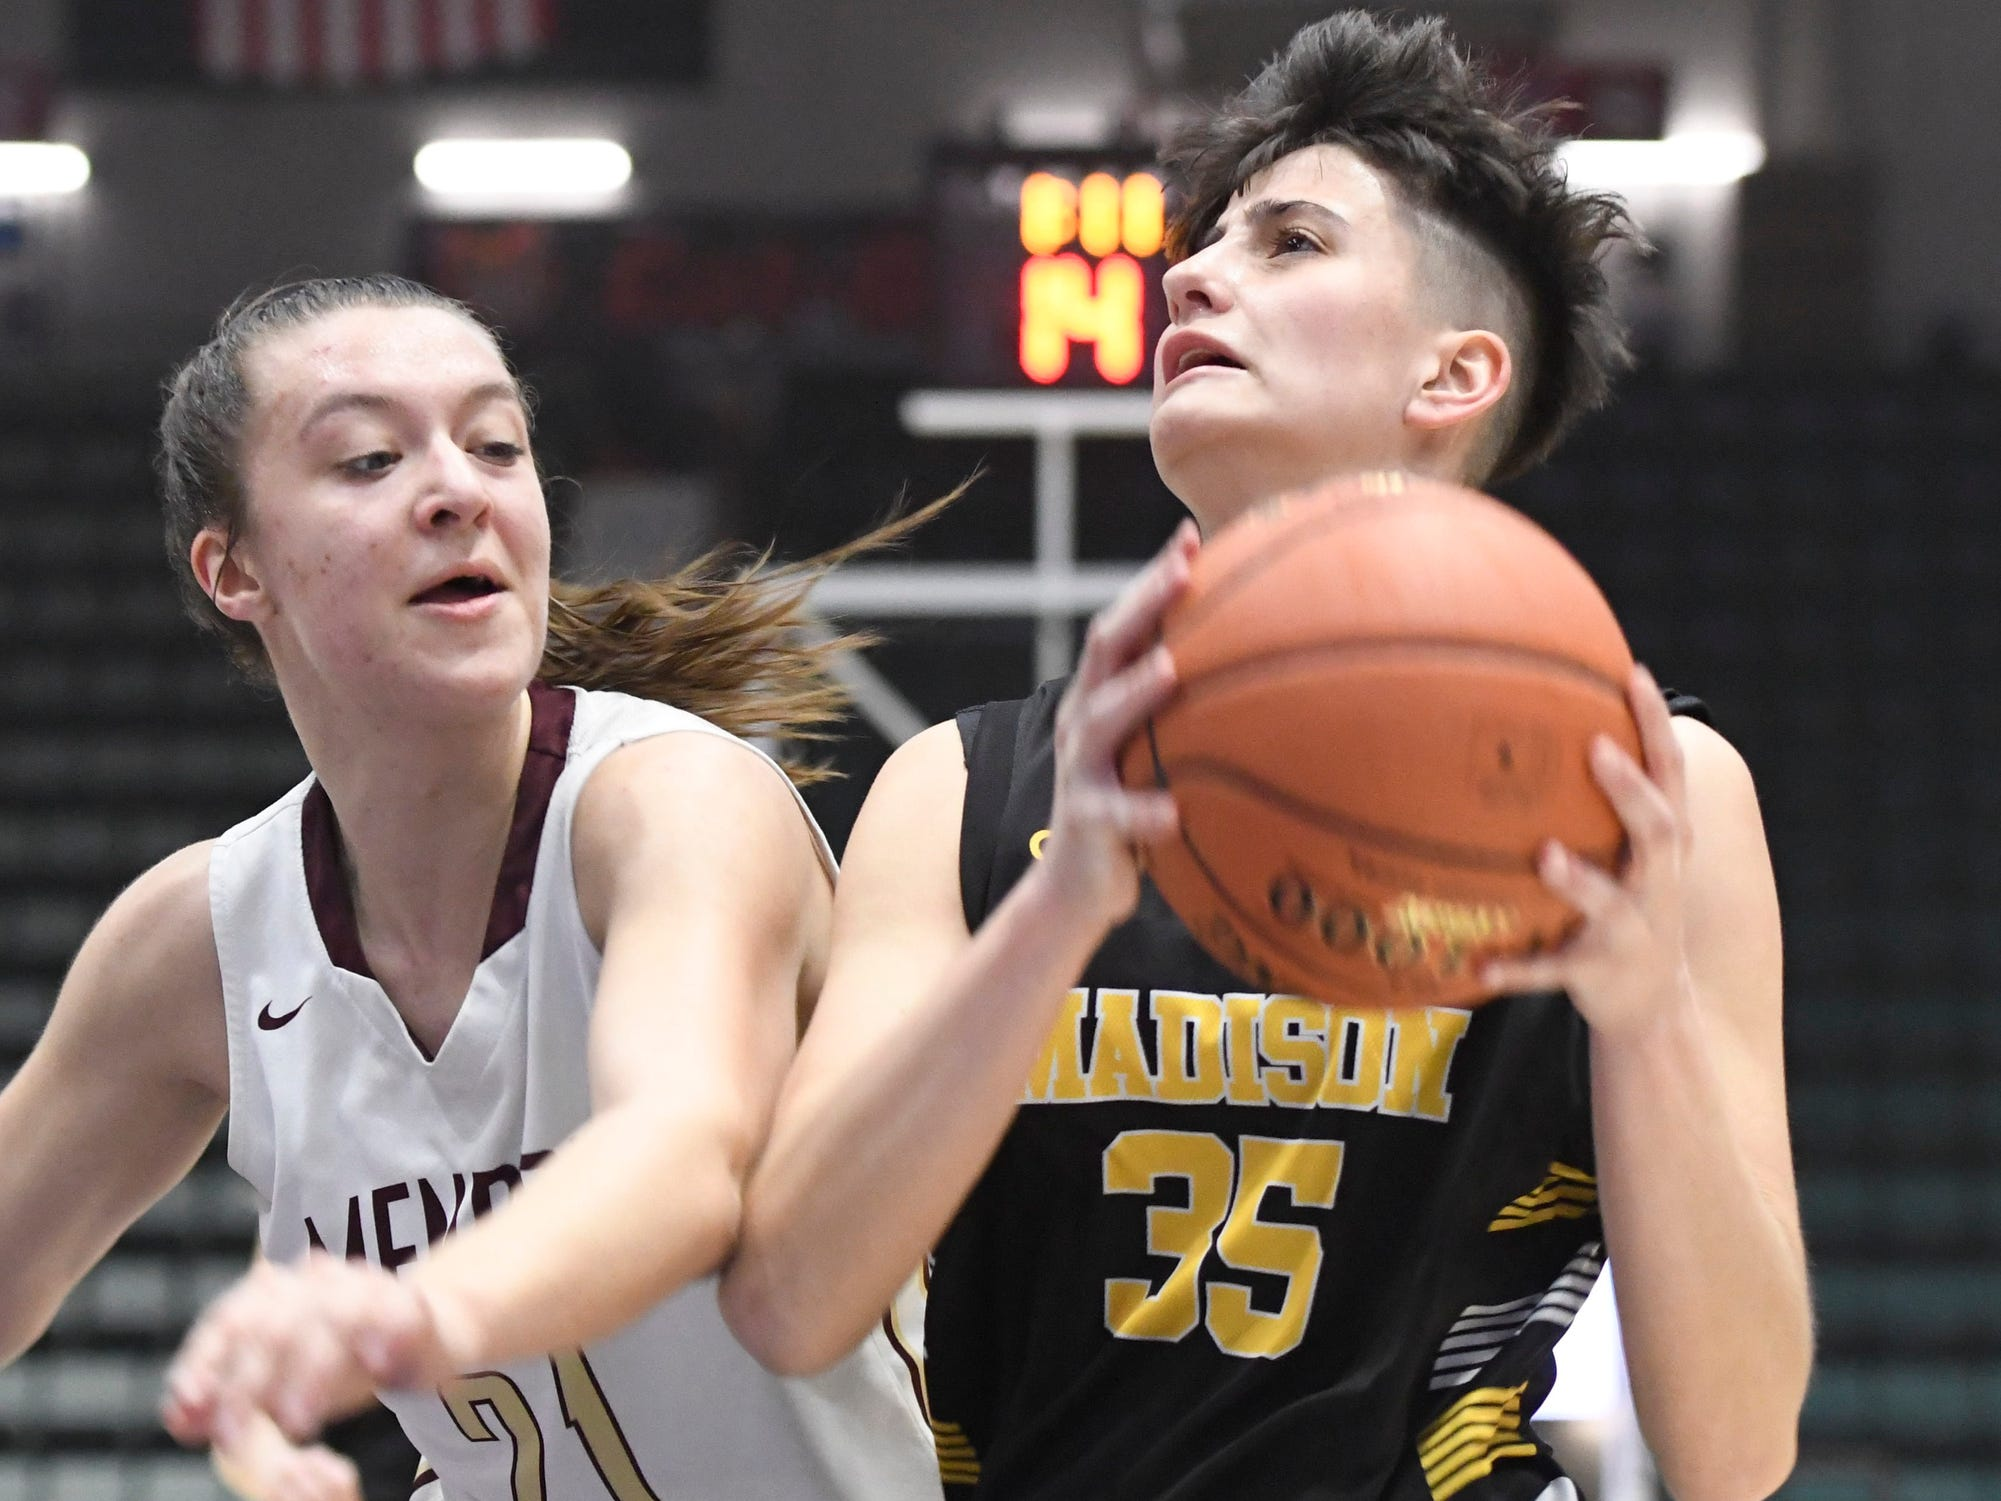 Pittsford Mendon's Alana Fursman attempts to snatch the ball from James Madison's Melinda Feratovic during their Girls Class A Federation Tournament of Champions semifinal at Cool Insuring Arena on Friday, March 23, 2019 in Glens Falls.